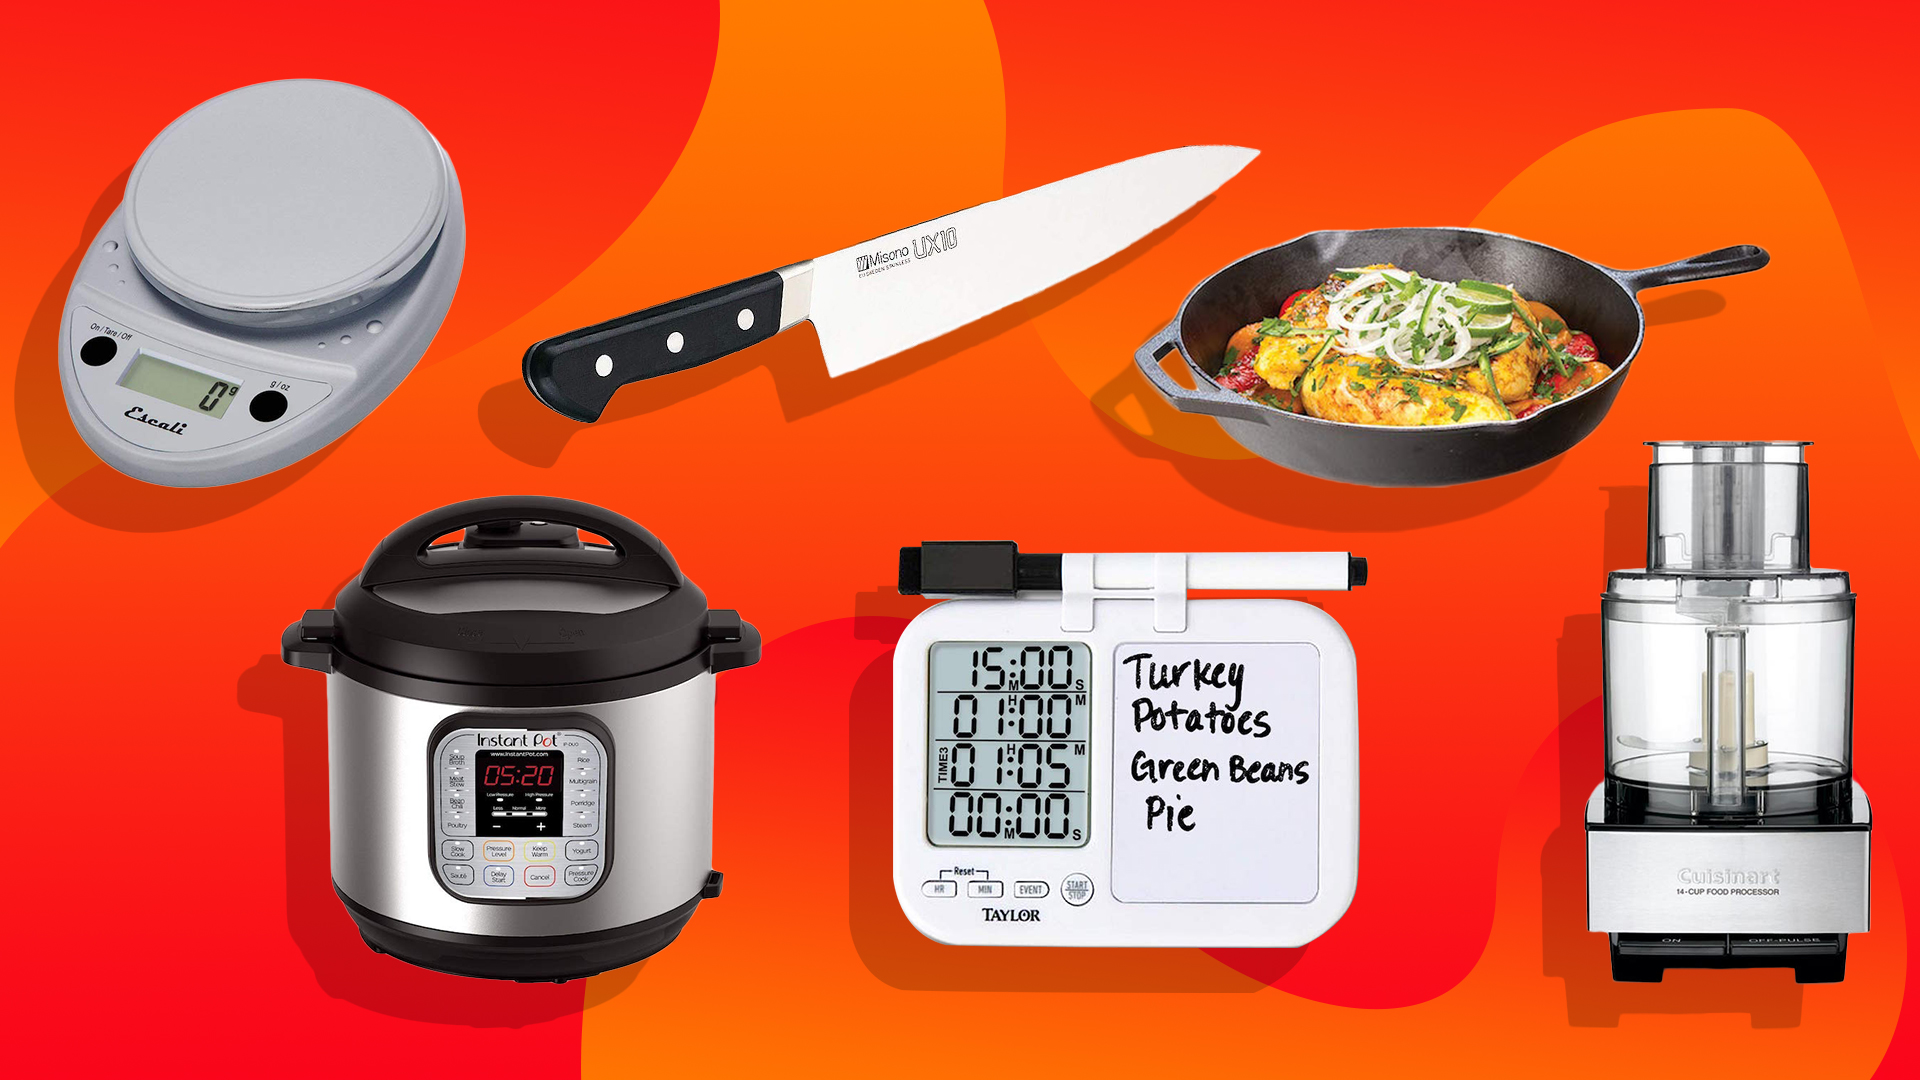 Gadget Cuisine The 13 Kitchen Gadgets That Will Actually Make You A Better Cook